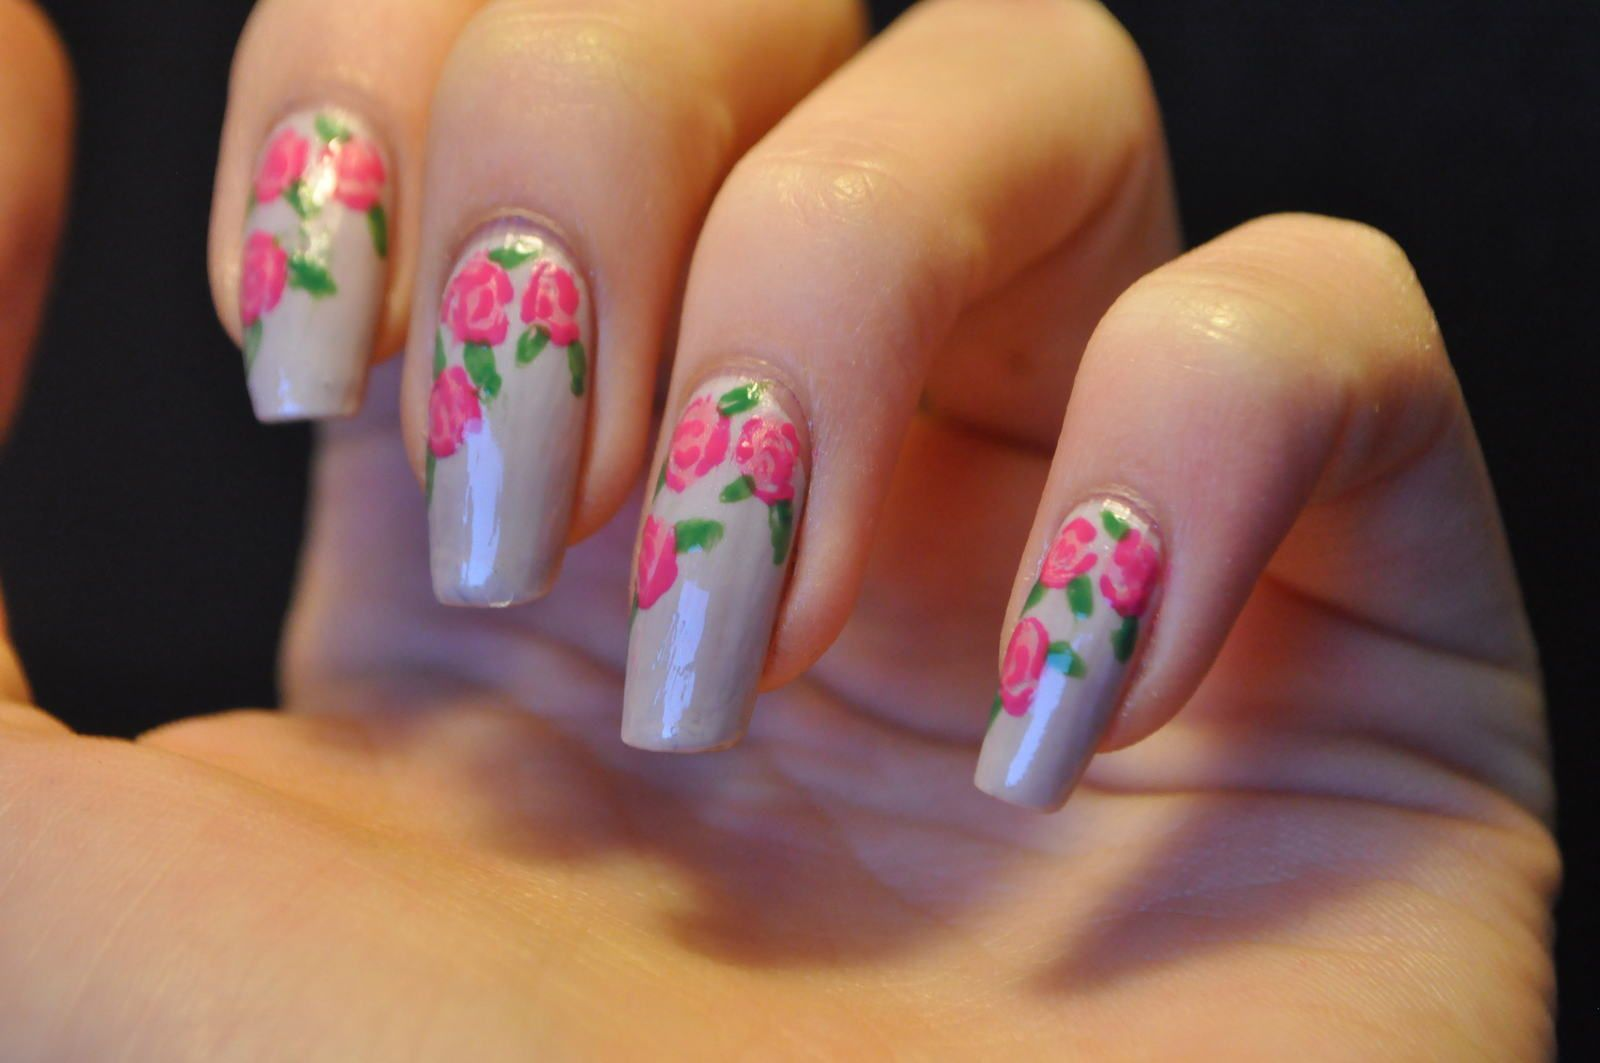 [Nailstorming] Flower power